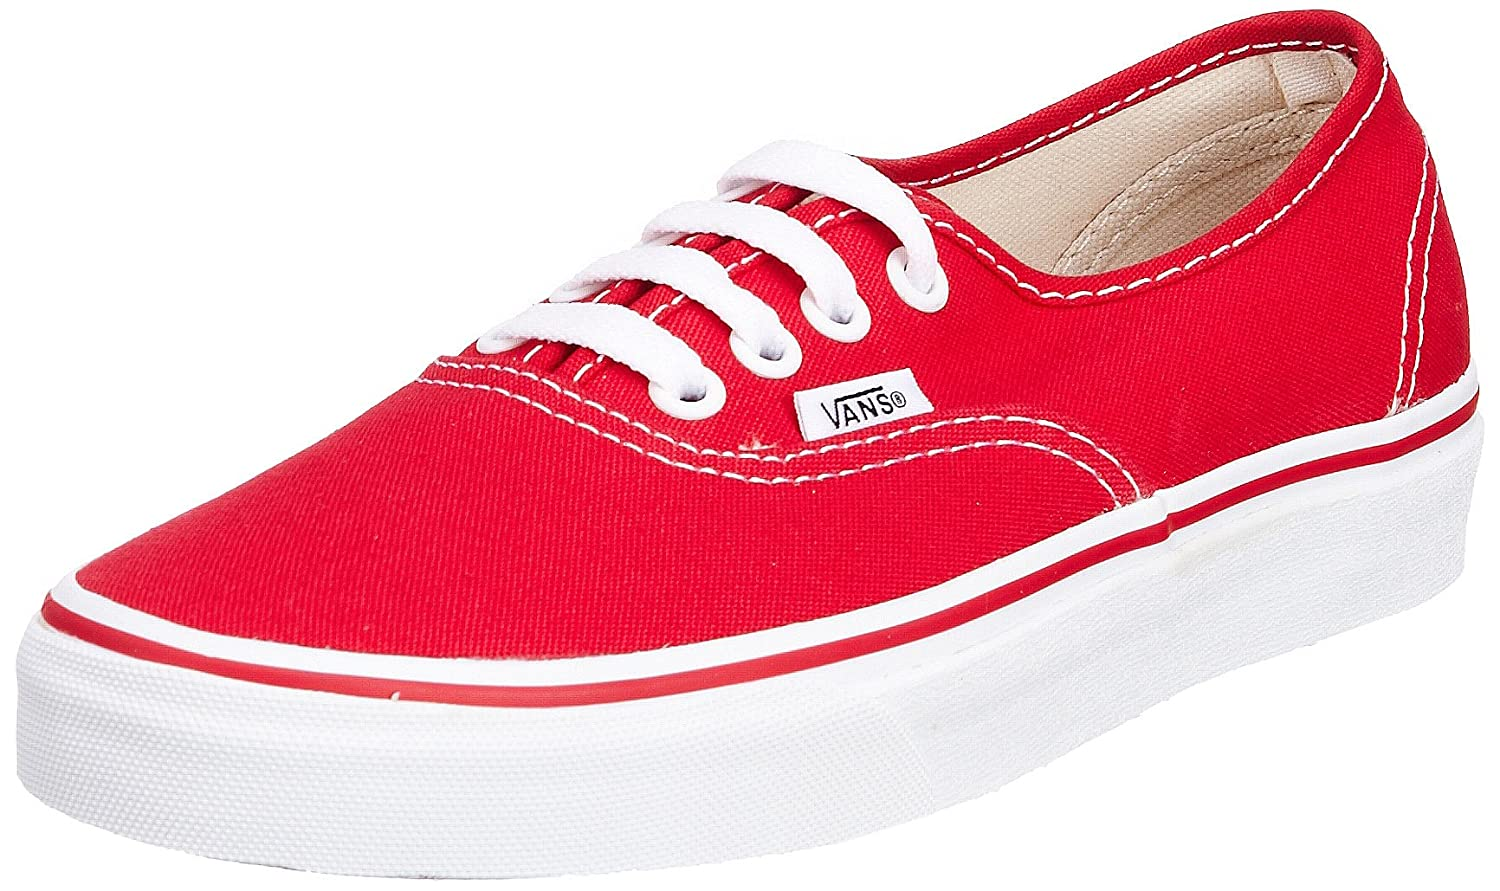 Vans Herren Authentic Core Classic Sneakers B001DD21VE 13.5 B(M) US Women / 12 D(M) US Men|Red